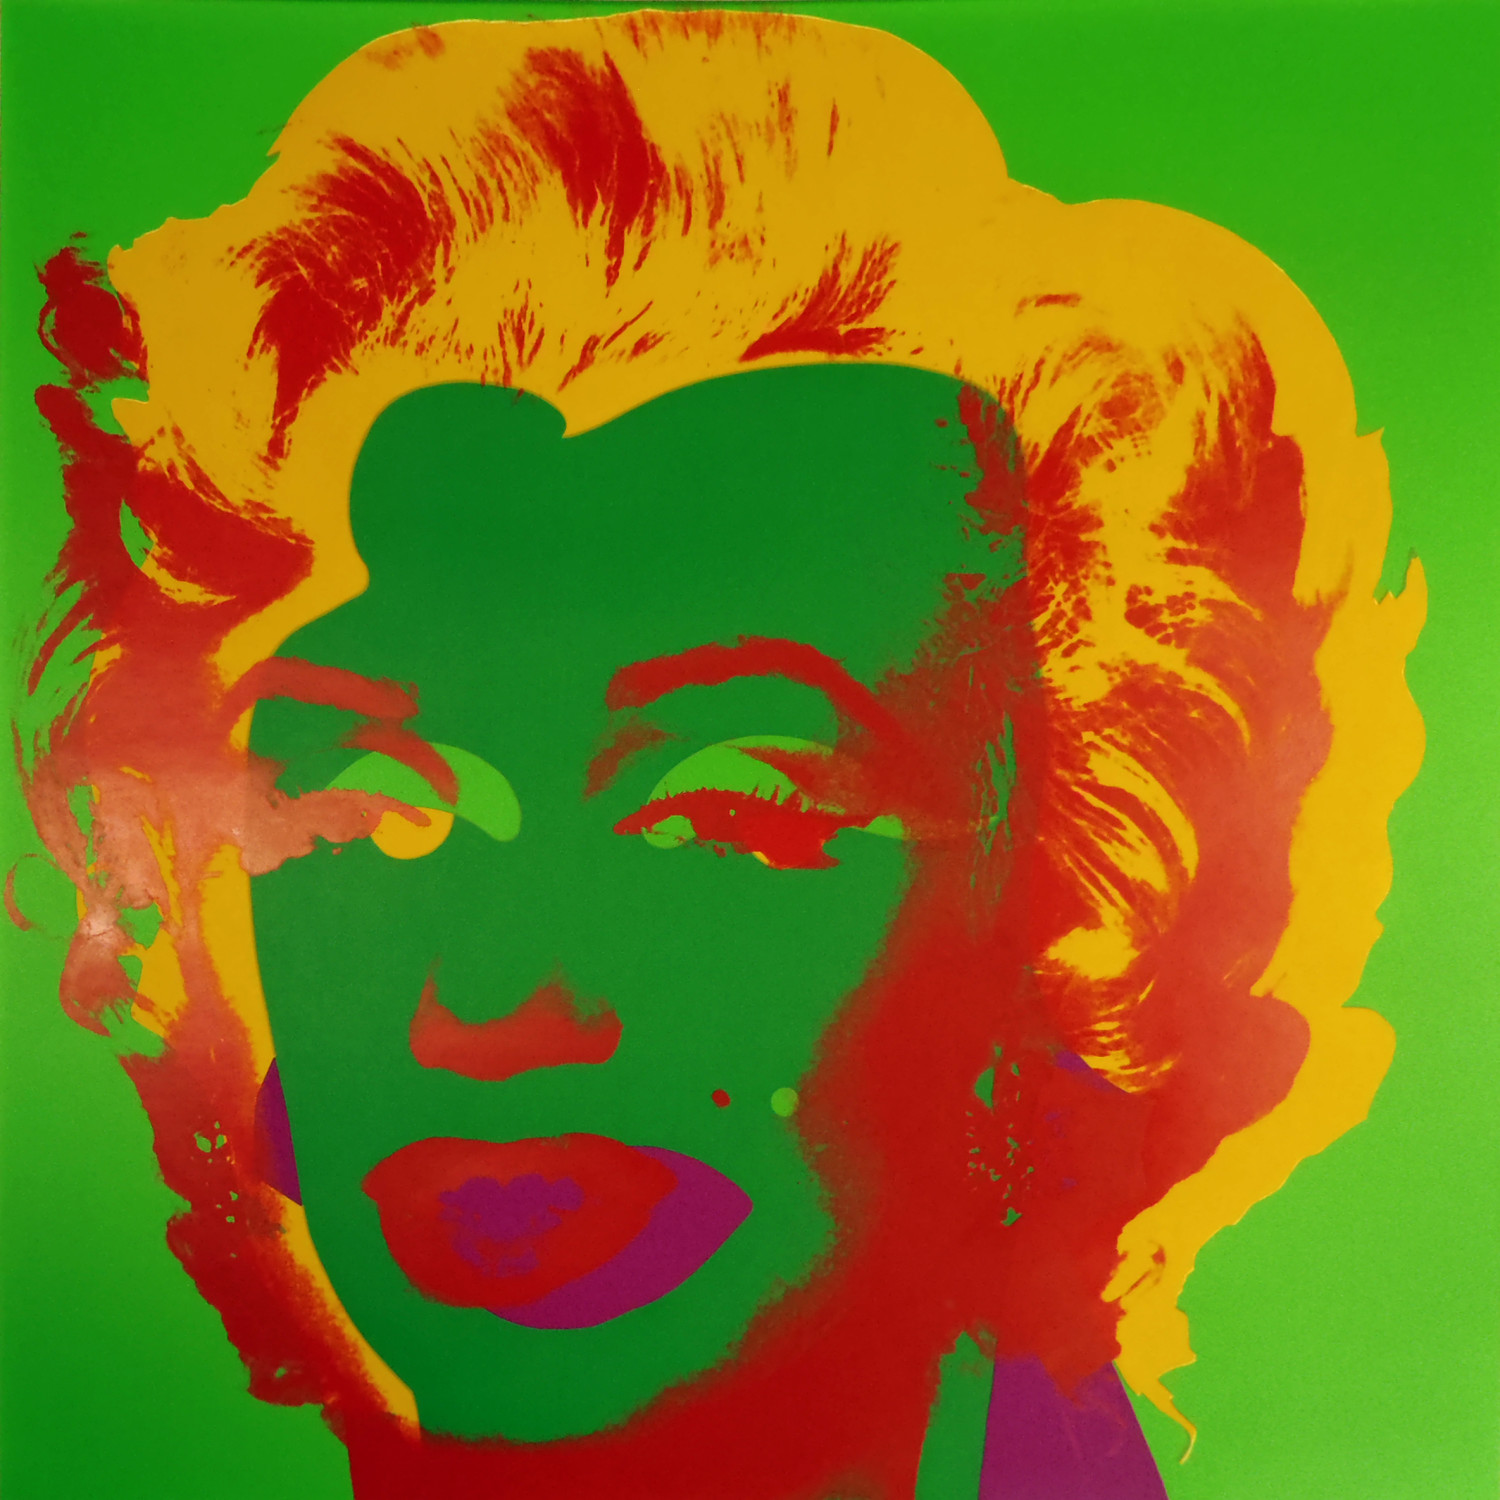 Andy Warhol | Marilyn Monroe 25 | 1967 | Image of Artists' work.